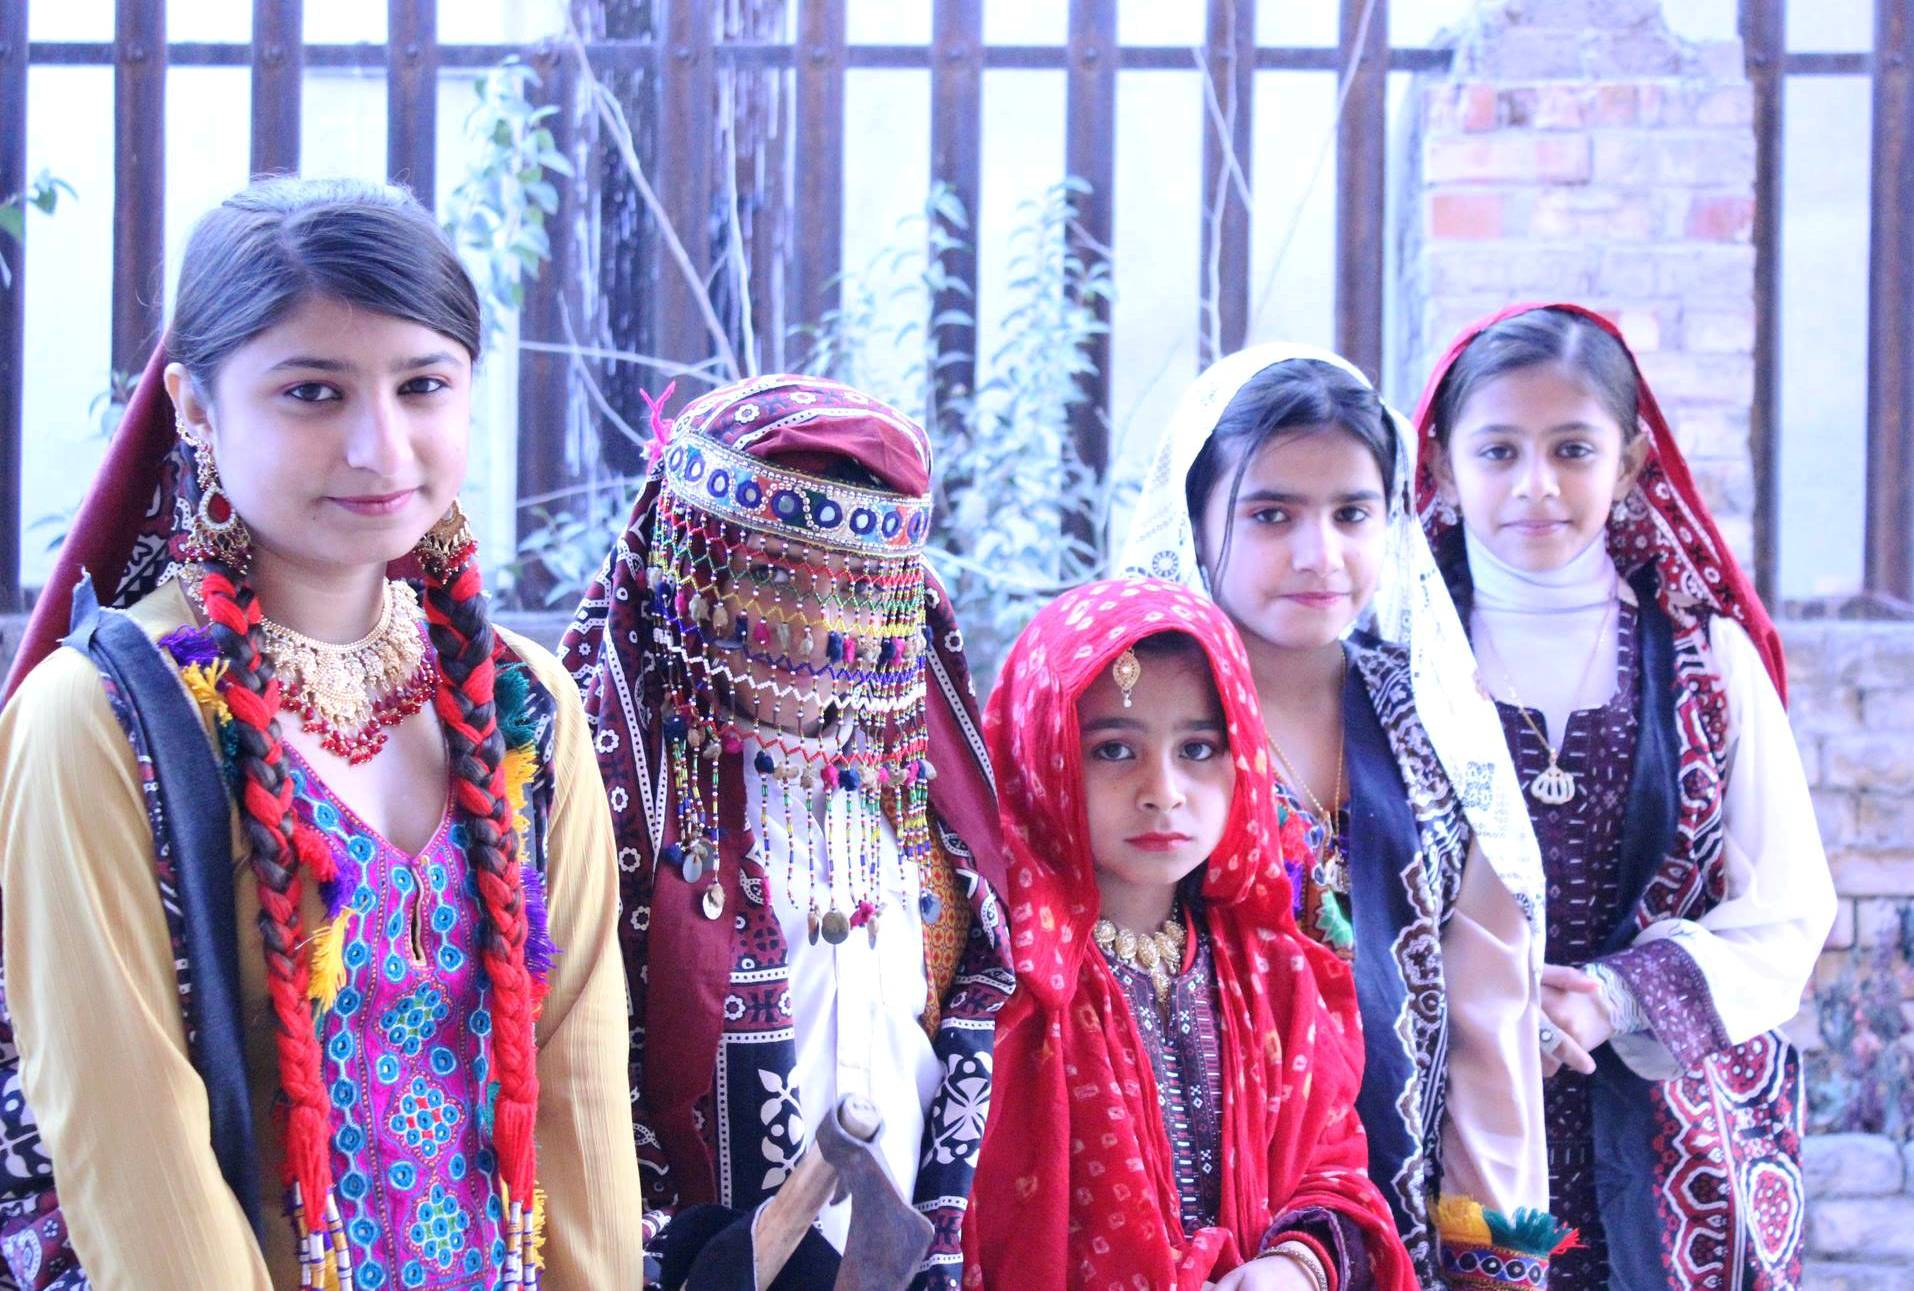 Baloch Culture Day 2014 the second day of Cultural